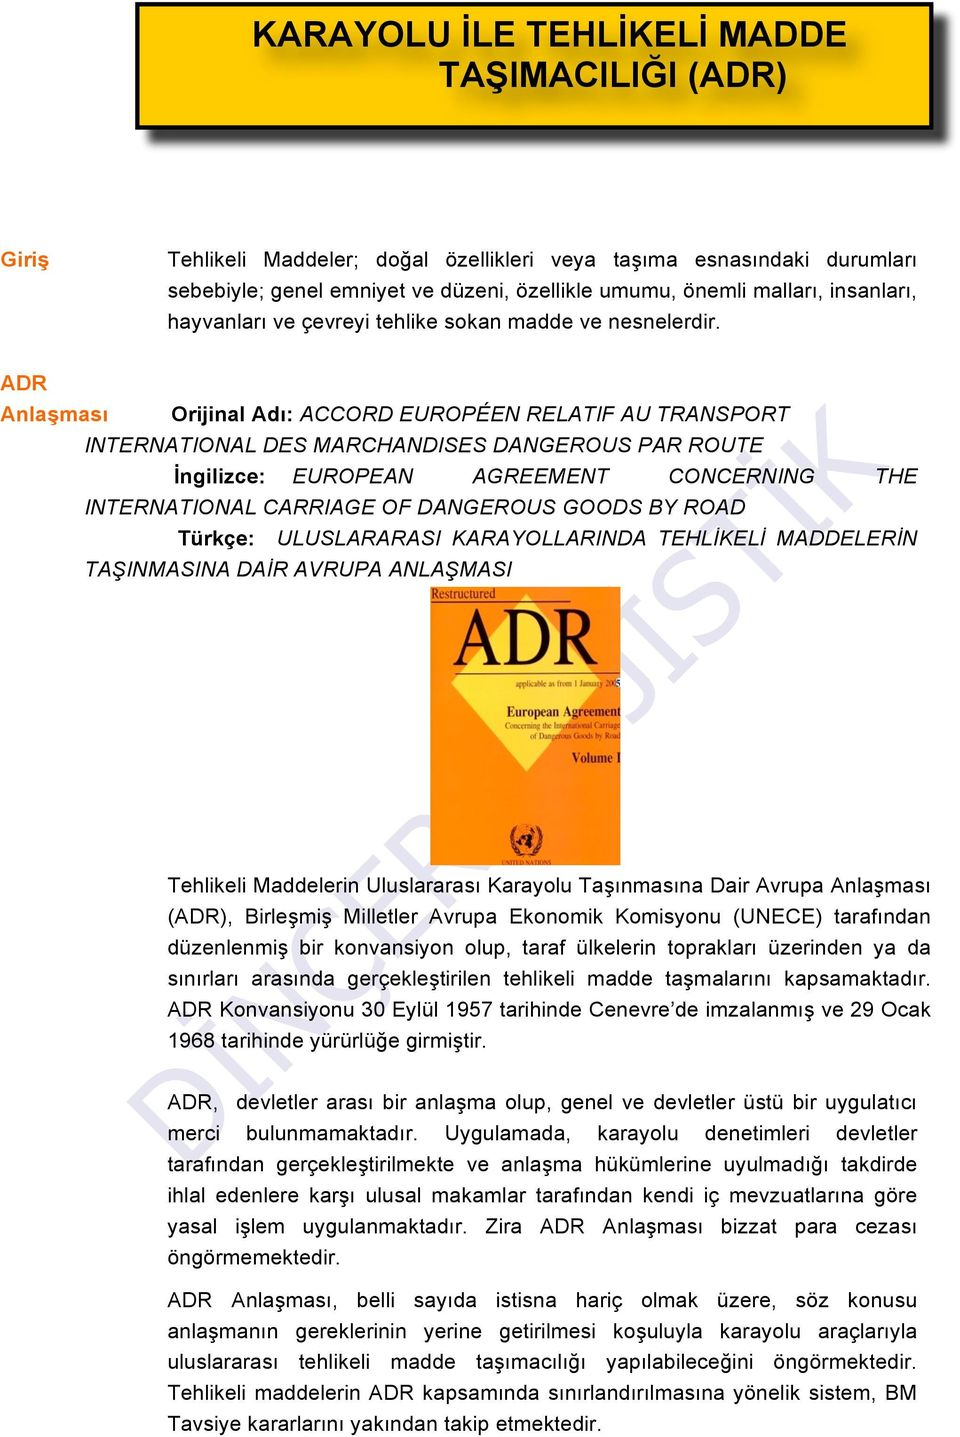 ADR Anlaşması Orijinal Adı: ACCORD EUROPÉEN RELATIF AU TRANSPORT INTERNATIONAL DES MARCHANDISES DANGEROUS PAR ROUTE İngilizce: EUROPEAN AGREEMENT CONCERNING THE INTERNATIONAL CARRIAGE OF DANGEROUS